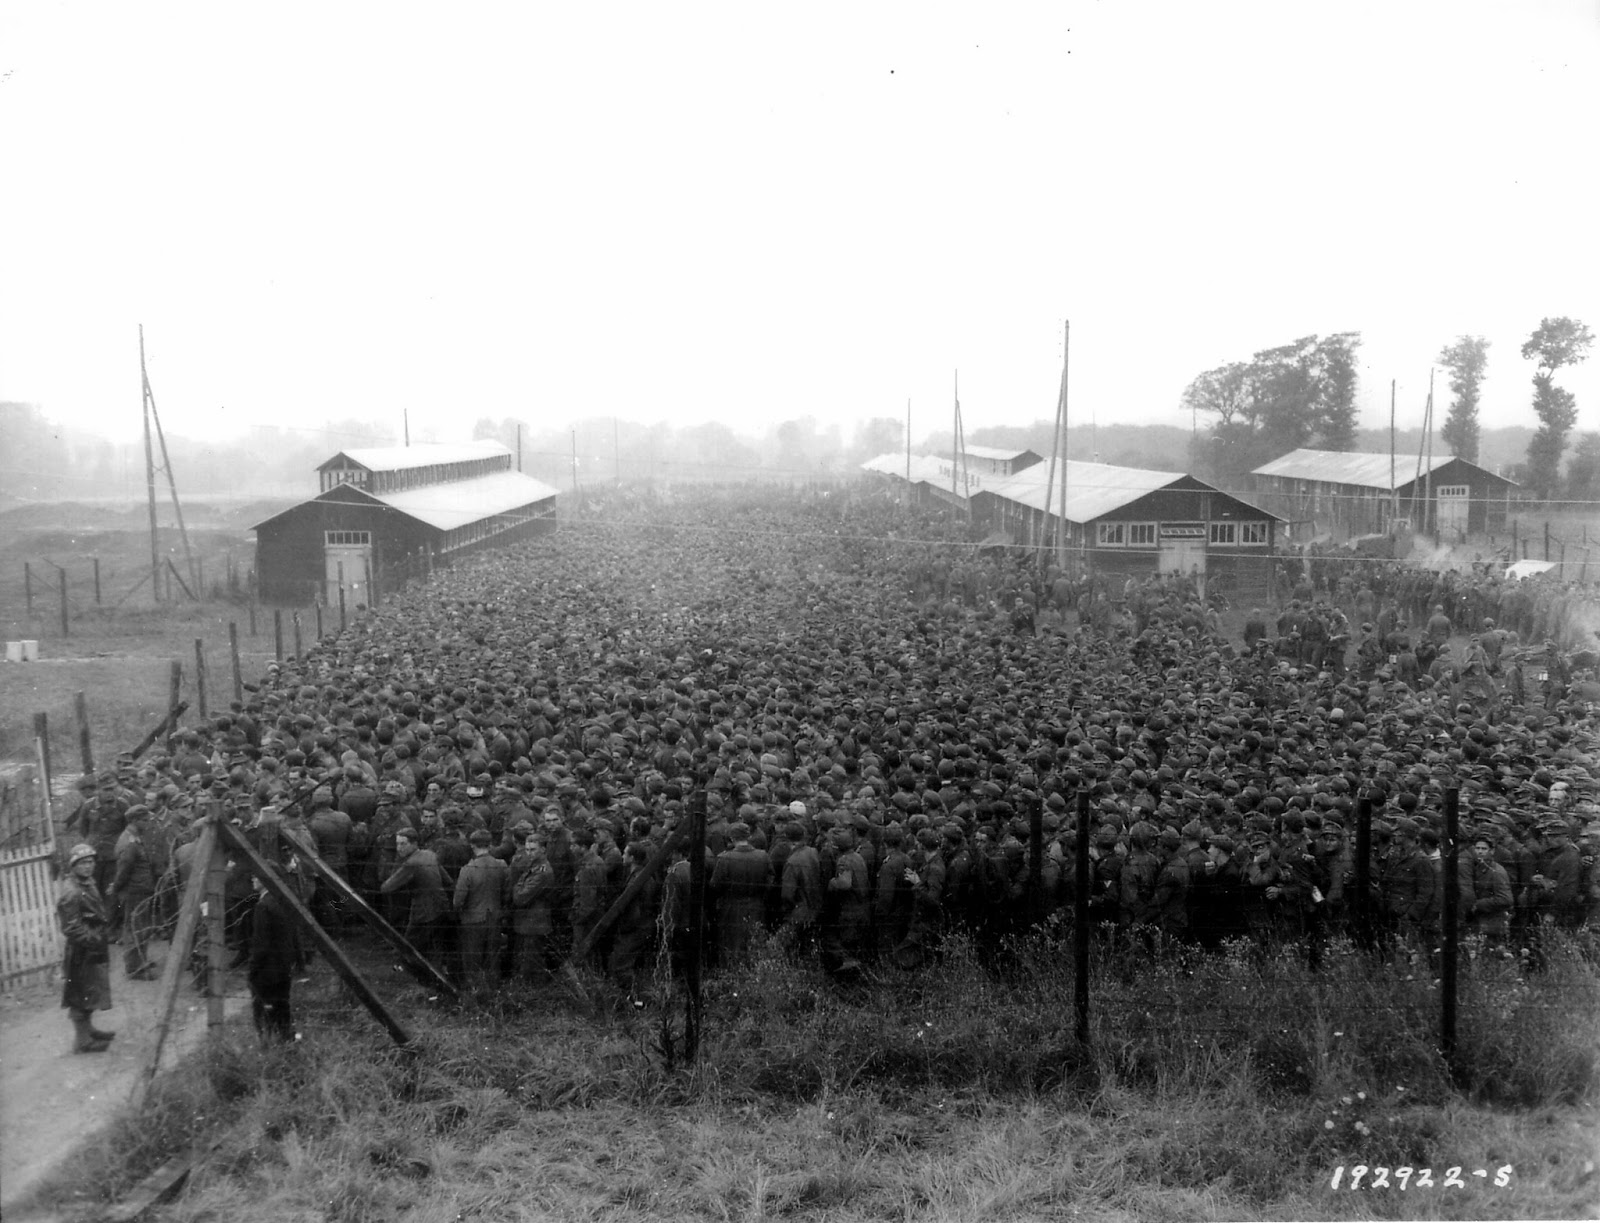 Thousands of German POW's at Nonant le Pin POW camp after the Falaise Pocket battles in which over 30,000 Germans were captured.